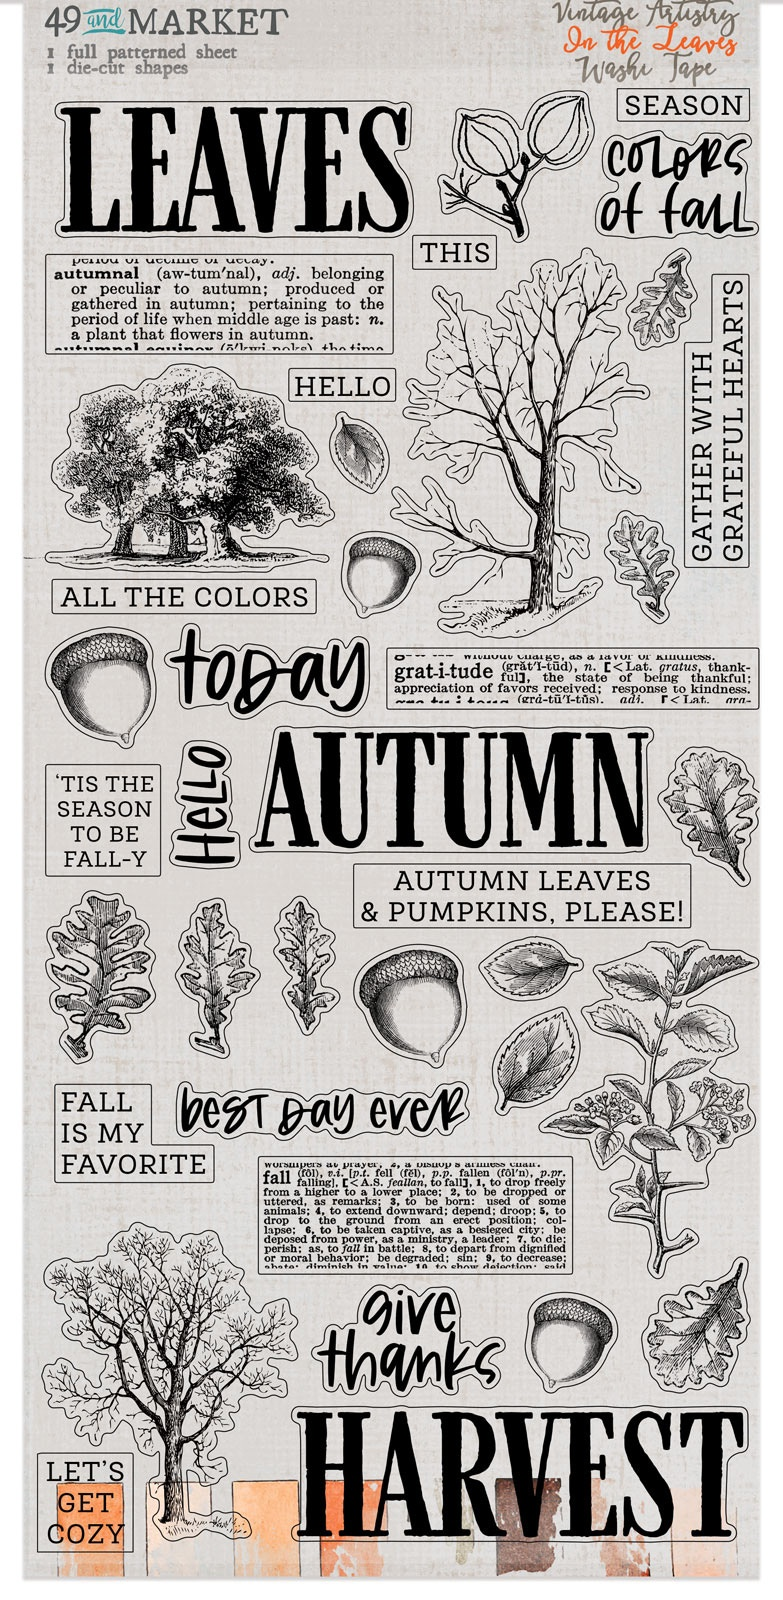 49 And Market Washi Tape-Vintage Artistry In The Leaves